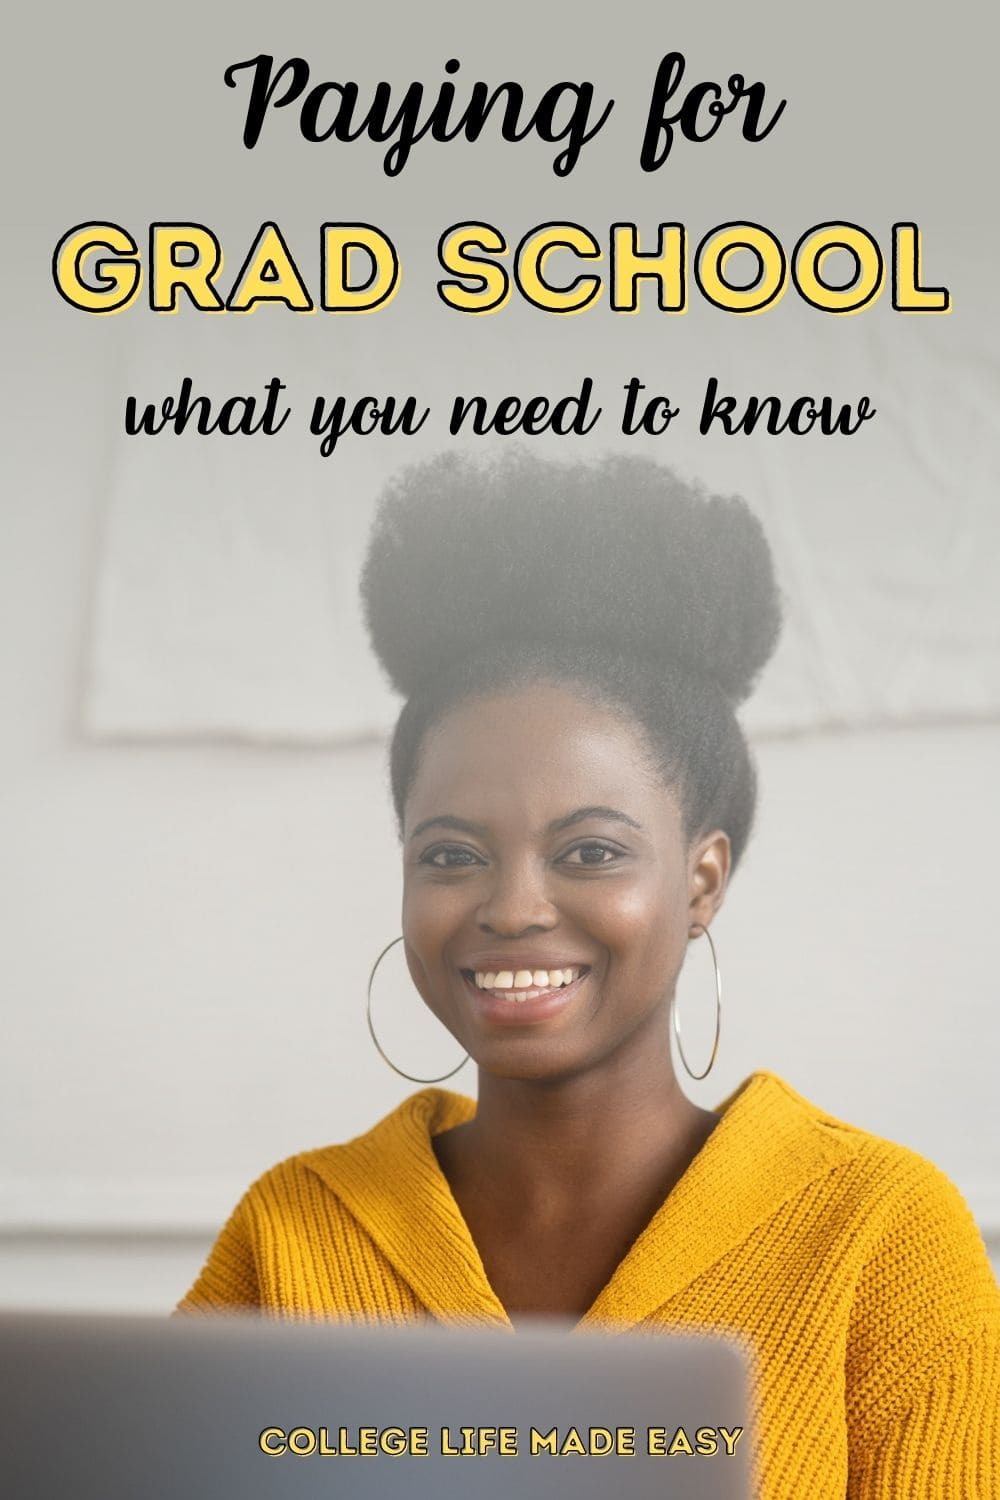 paying for grad school what you need to know infographic for Pinterest